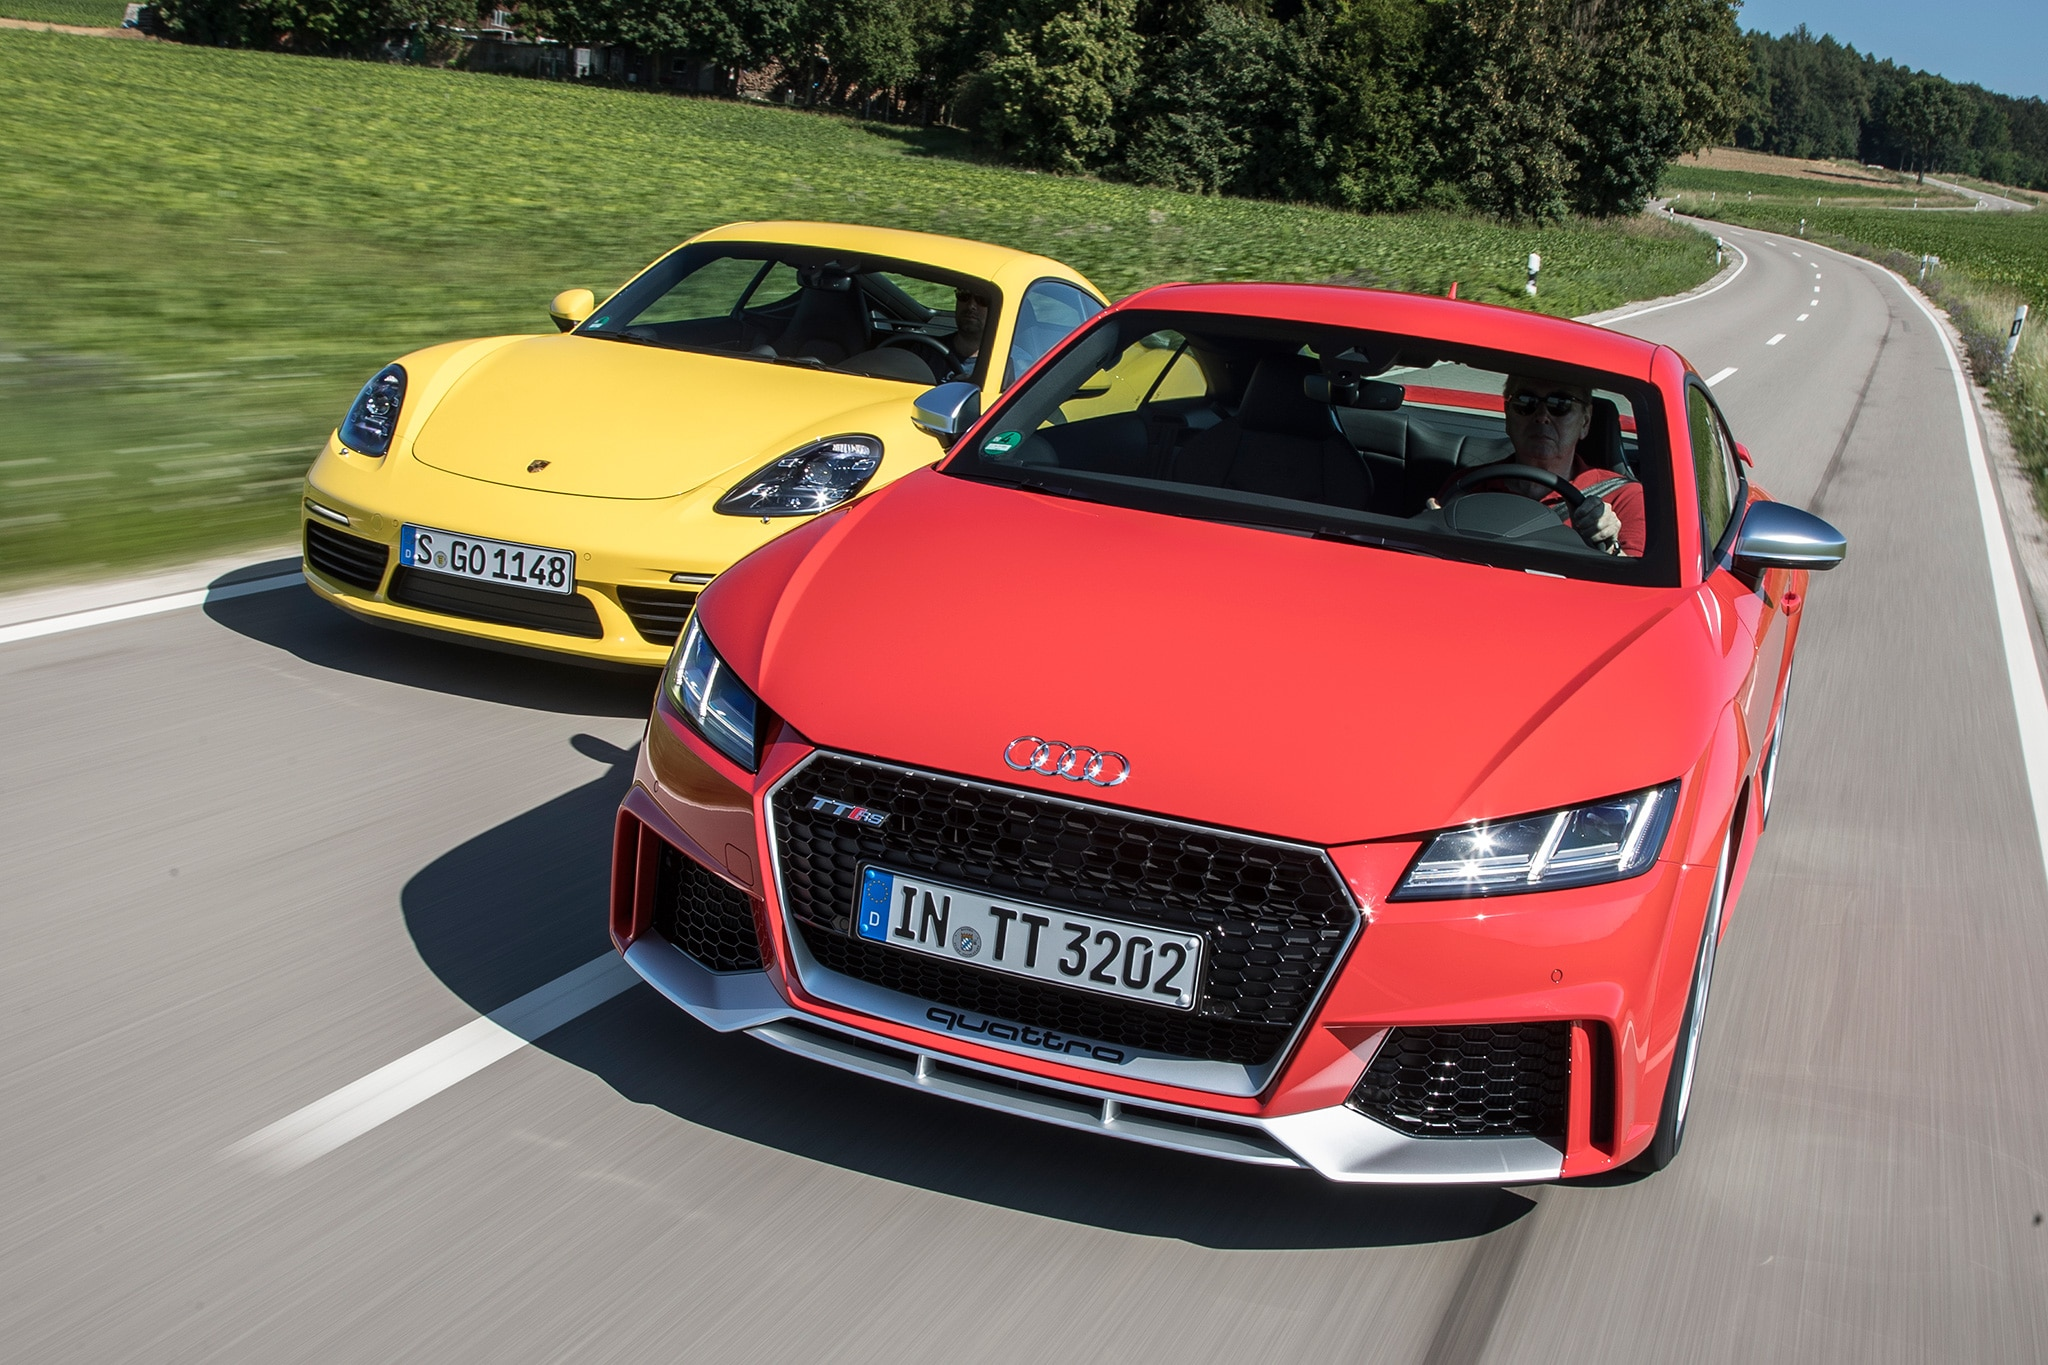 2018-Audi-TT-RS-vs-2017-Porsche-Cayman-S-01 Mesmerizing Porsche 911 Turbo Vs Z06 Cars Trend